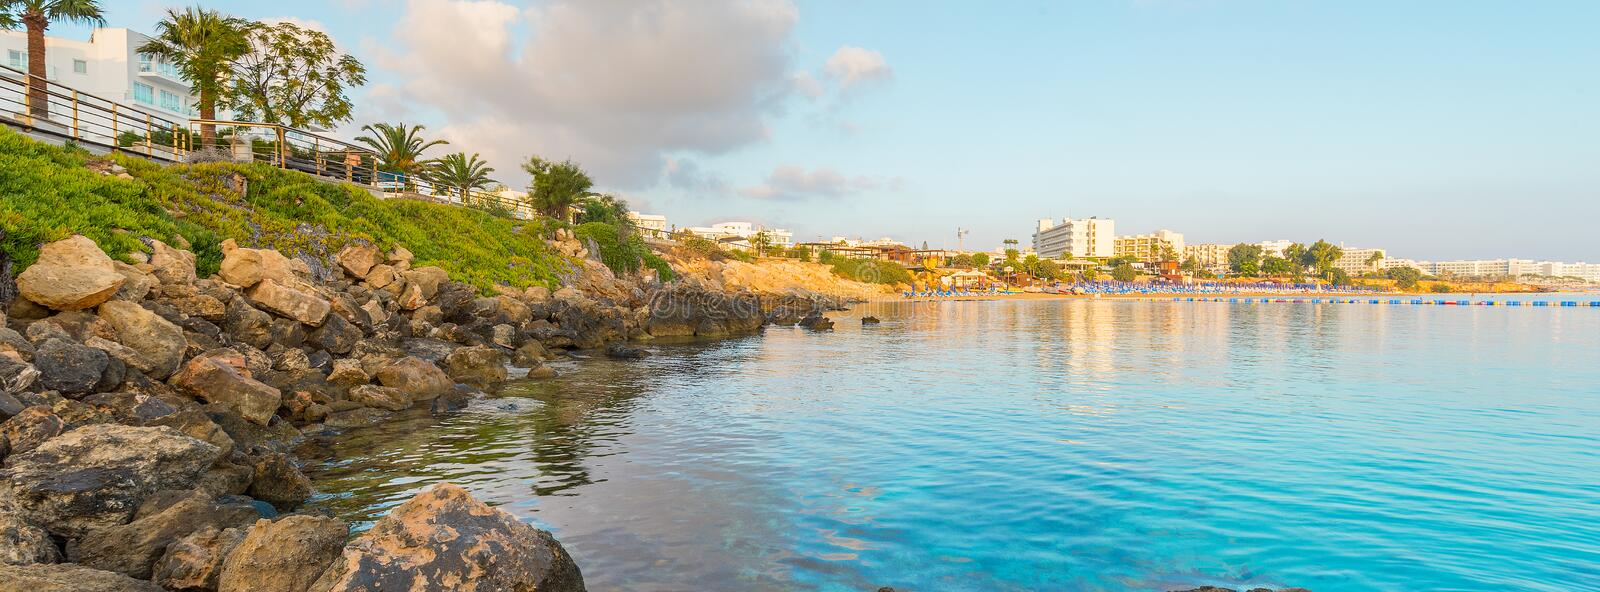 Fig tree bay beach in Protaras, Cyprus. royalty free stock images